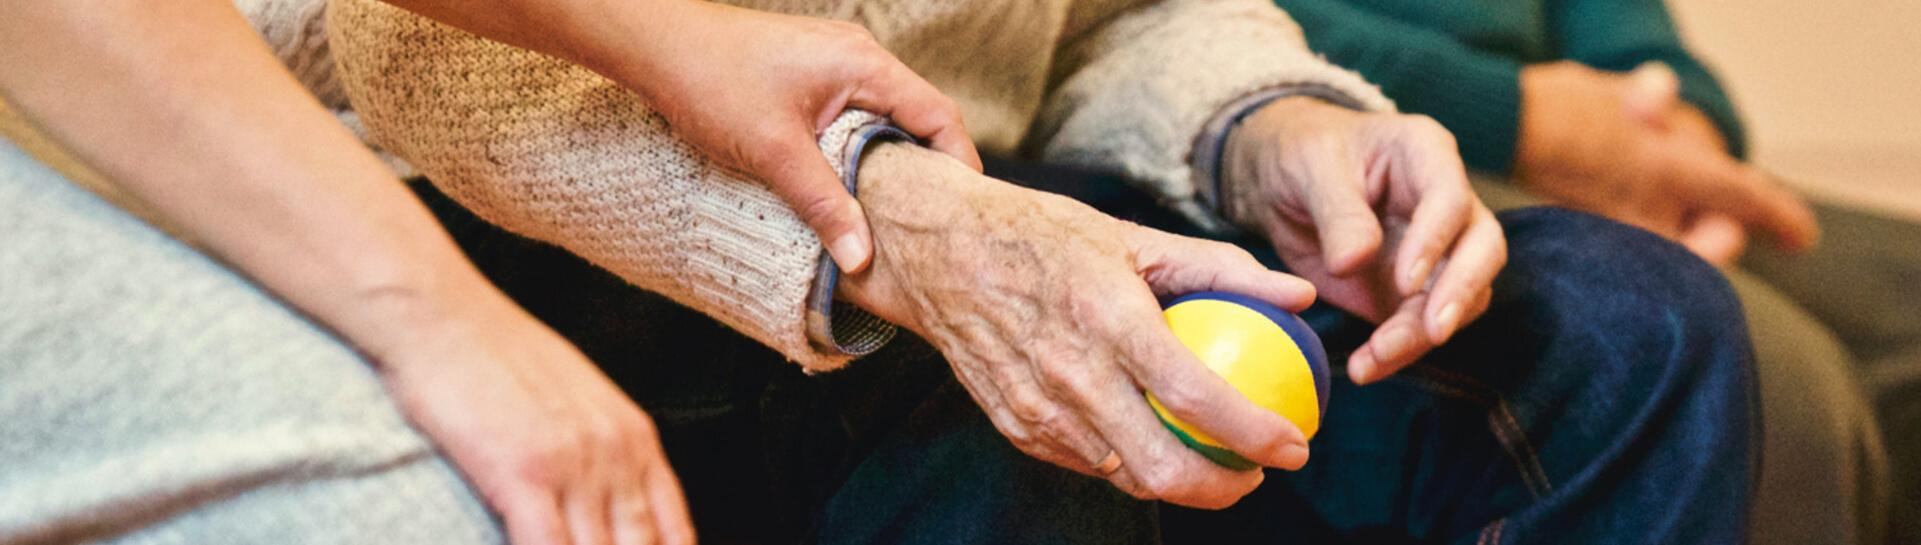 An elderly person squeezing a strength-building ball in their hand